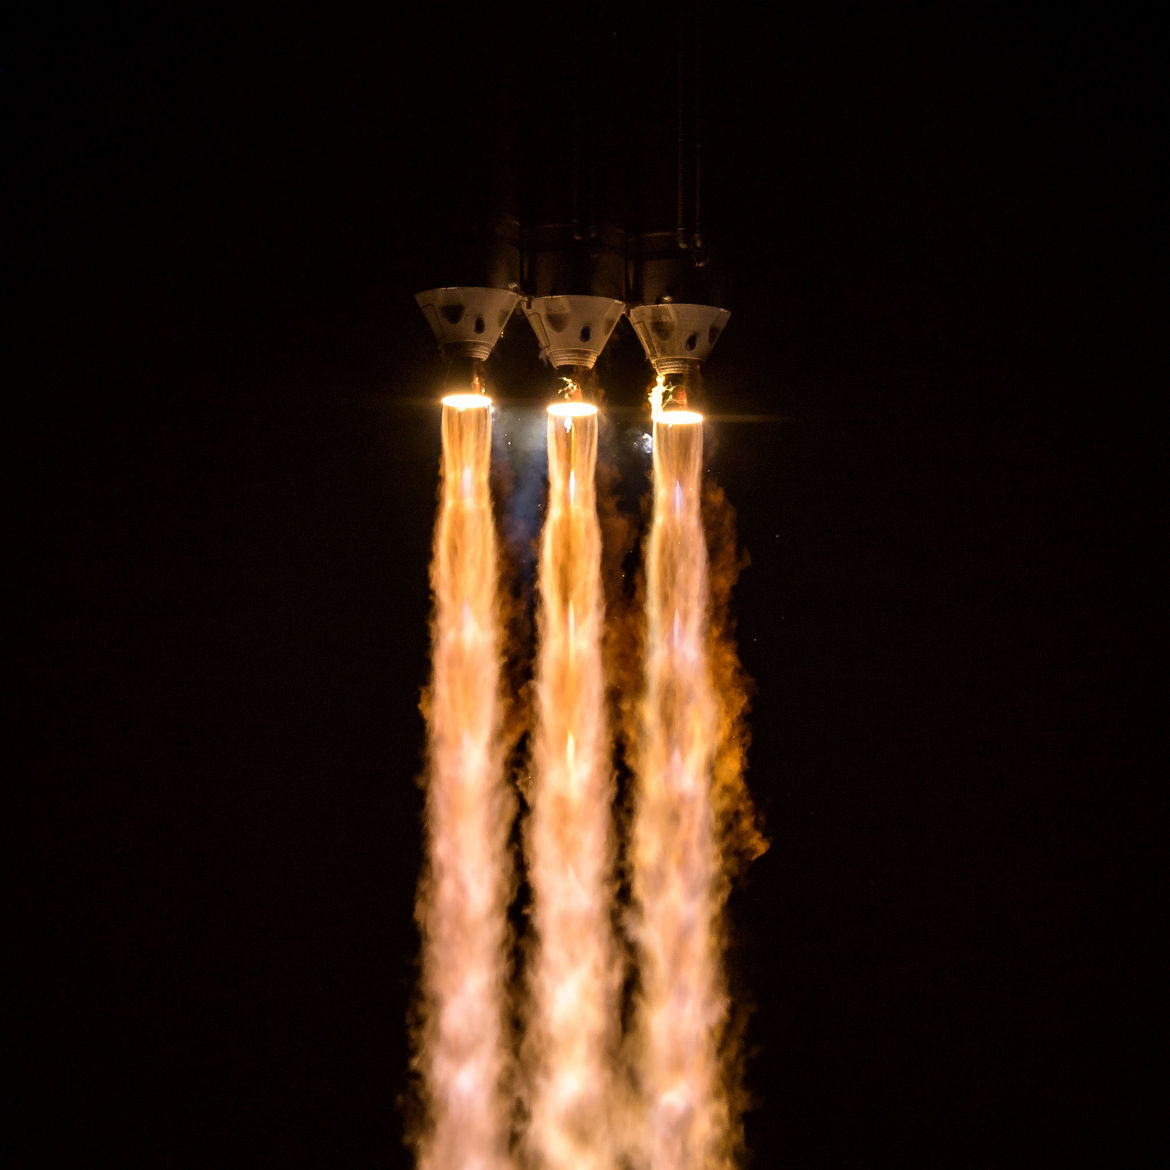 Gorgeous shot of the Delta IV Heavy rocket's engines as it propels the Parker Solar Probe toward the Sun. Credit: NASA/Bill Ingalls